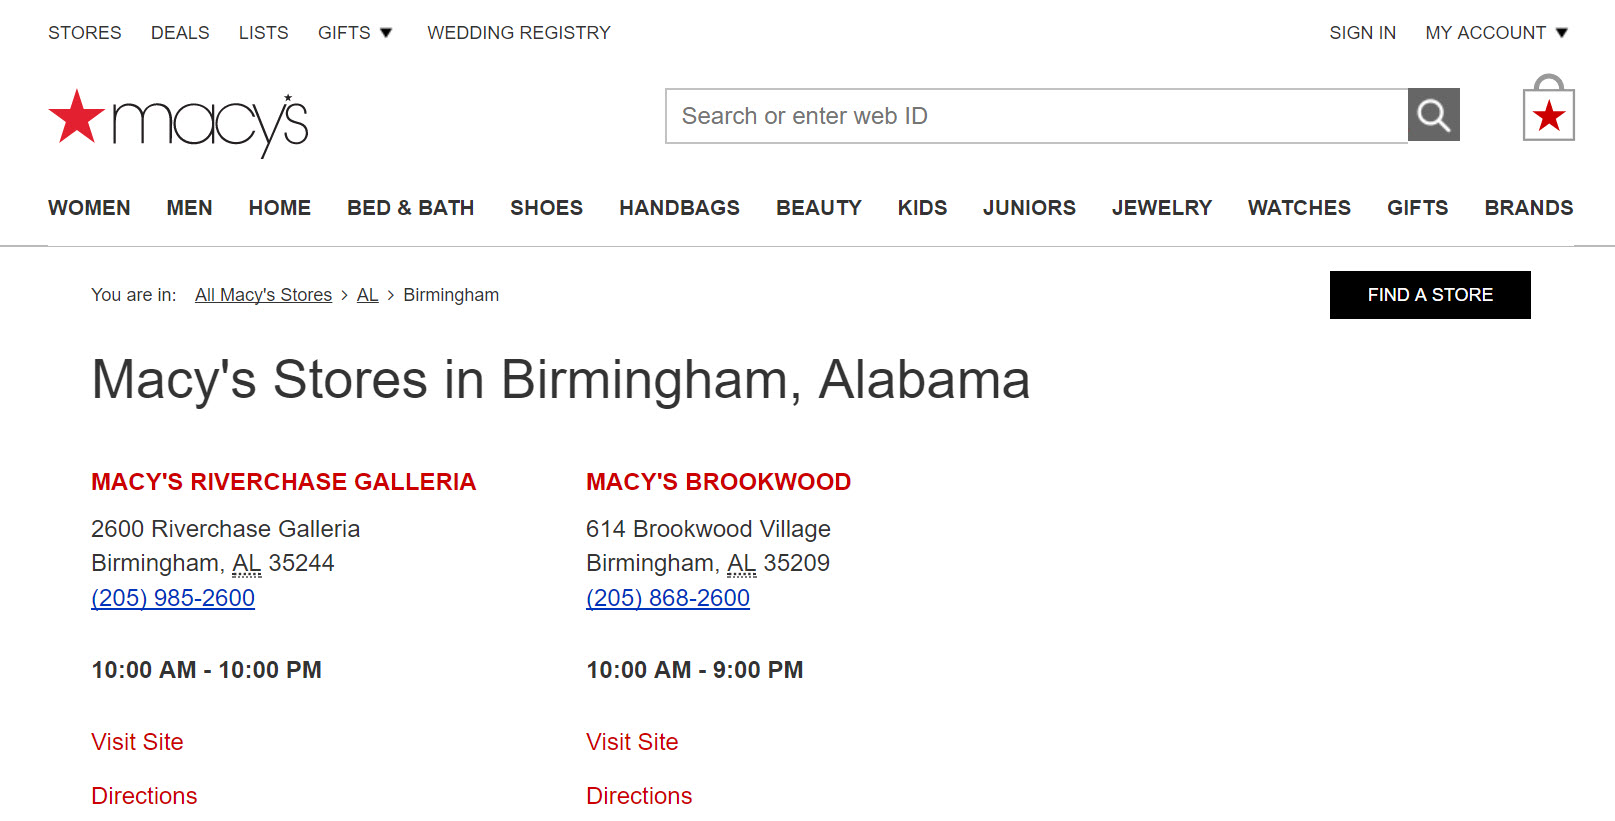 Clicking on the state page for Alabama produces the two Macy's locations in the state, with links to individual pages for store details.